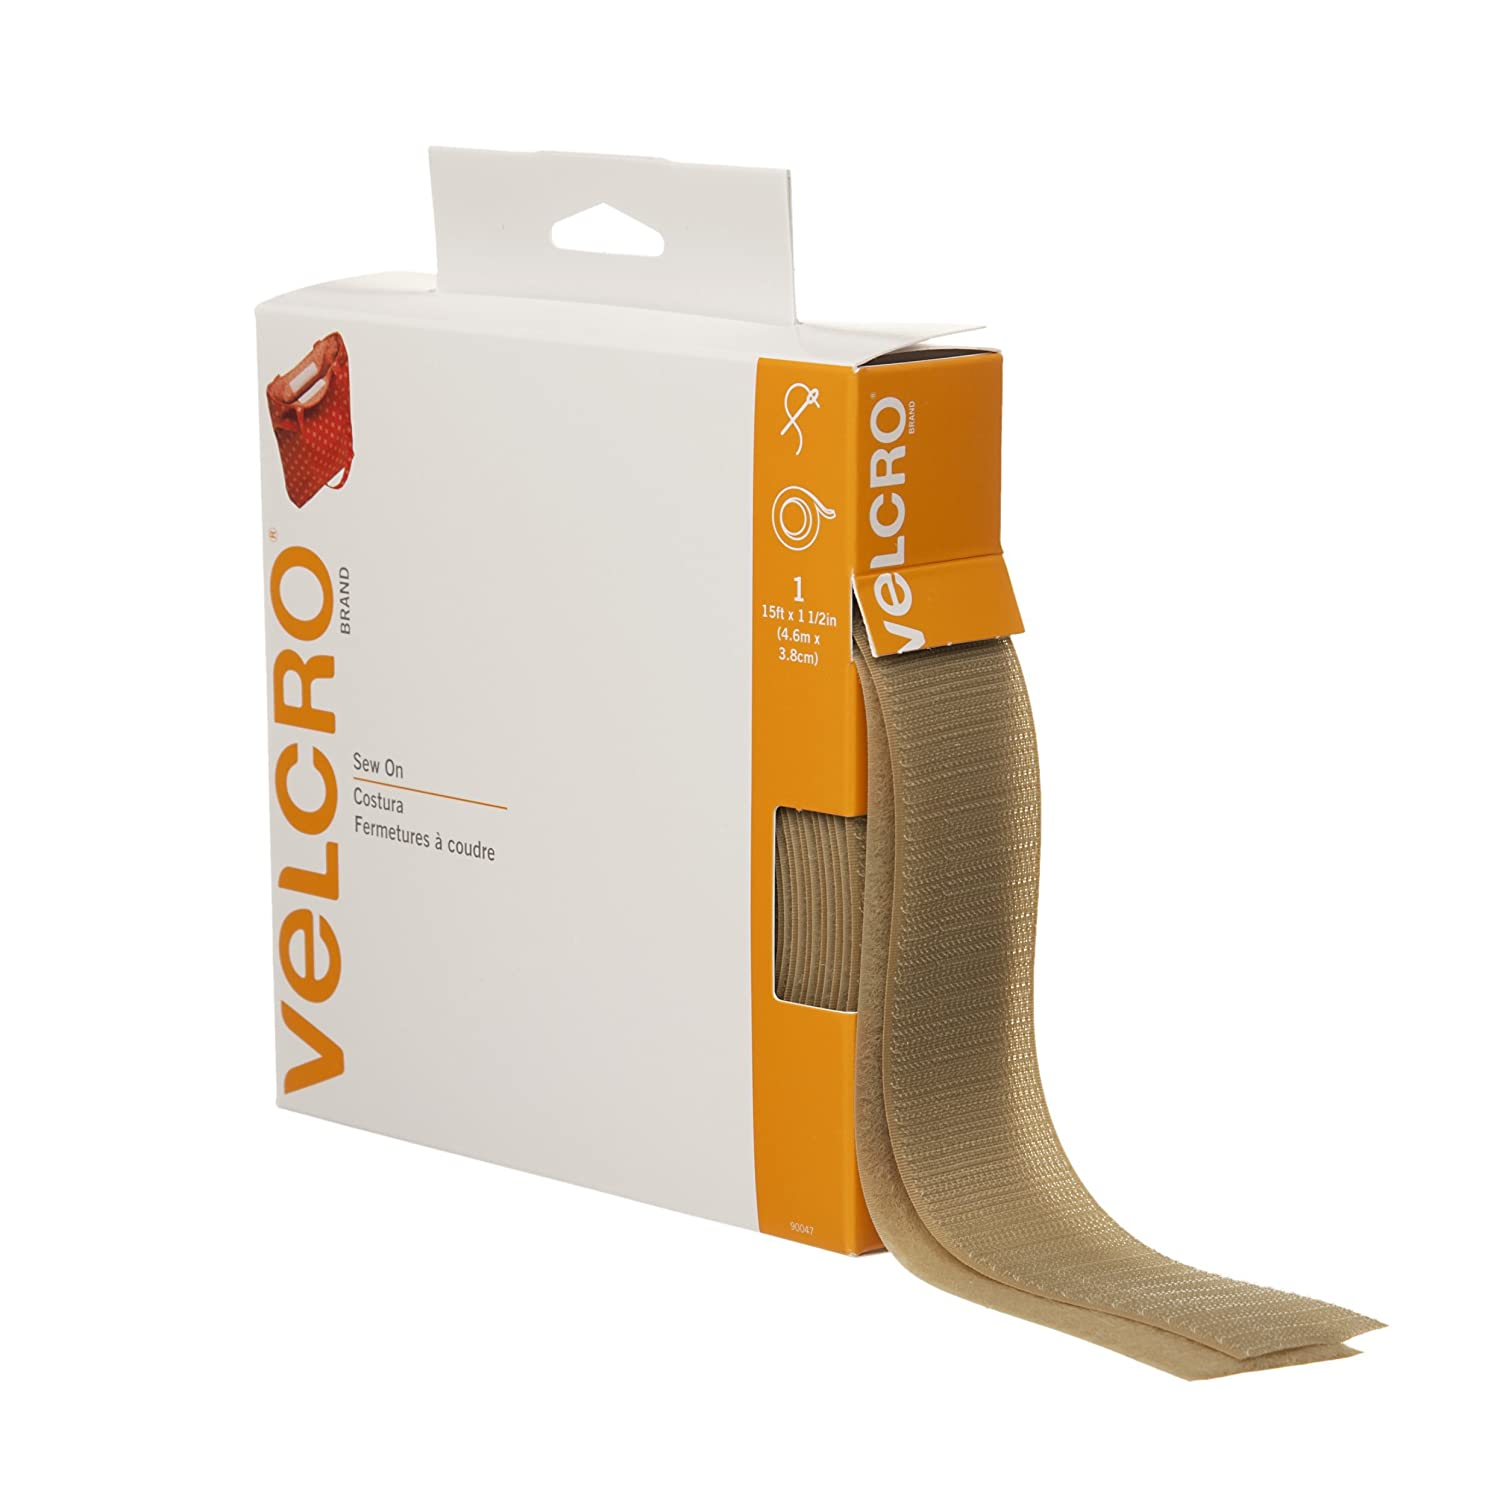 VELCRO(R) brand Sew-On Tape 1-1/2